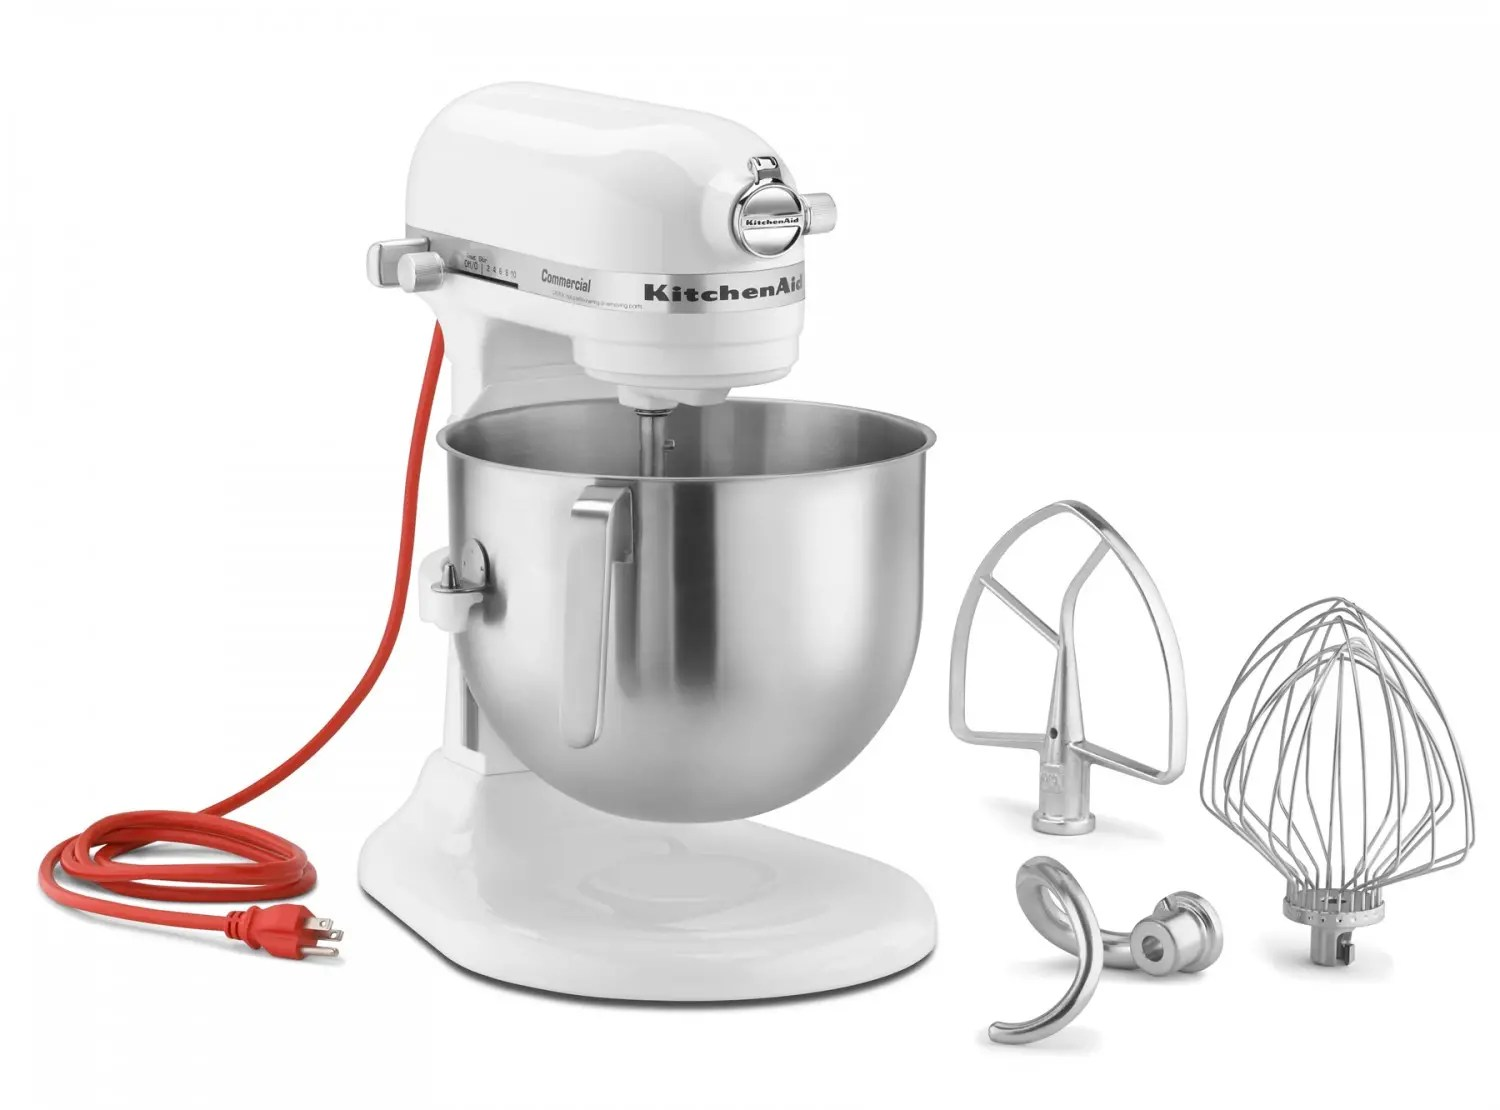 kitchen aide stand mixer how to refurbish cabinets alfa international kcm7 7 qt bowl lift capacity